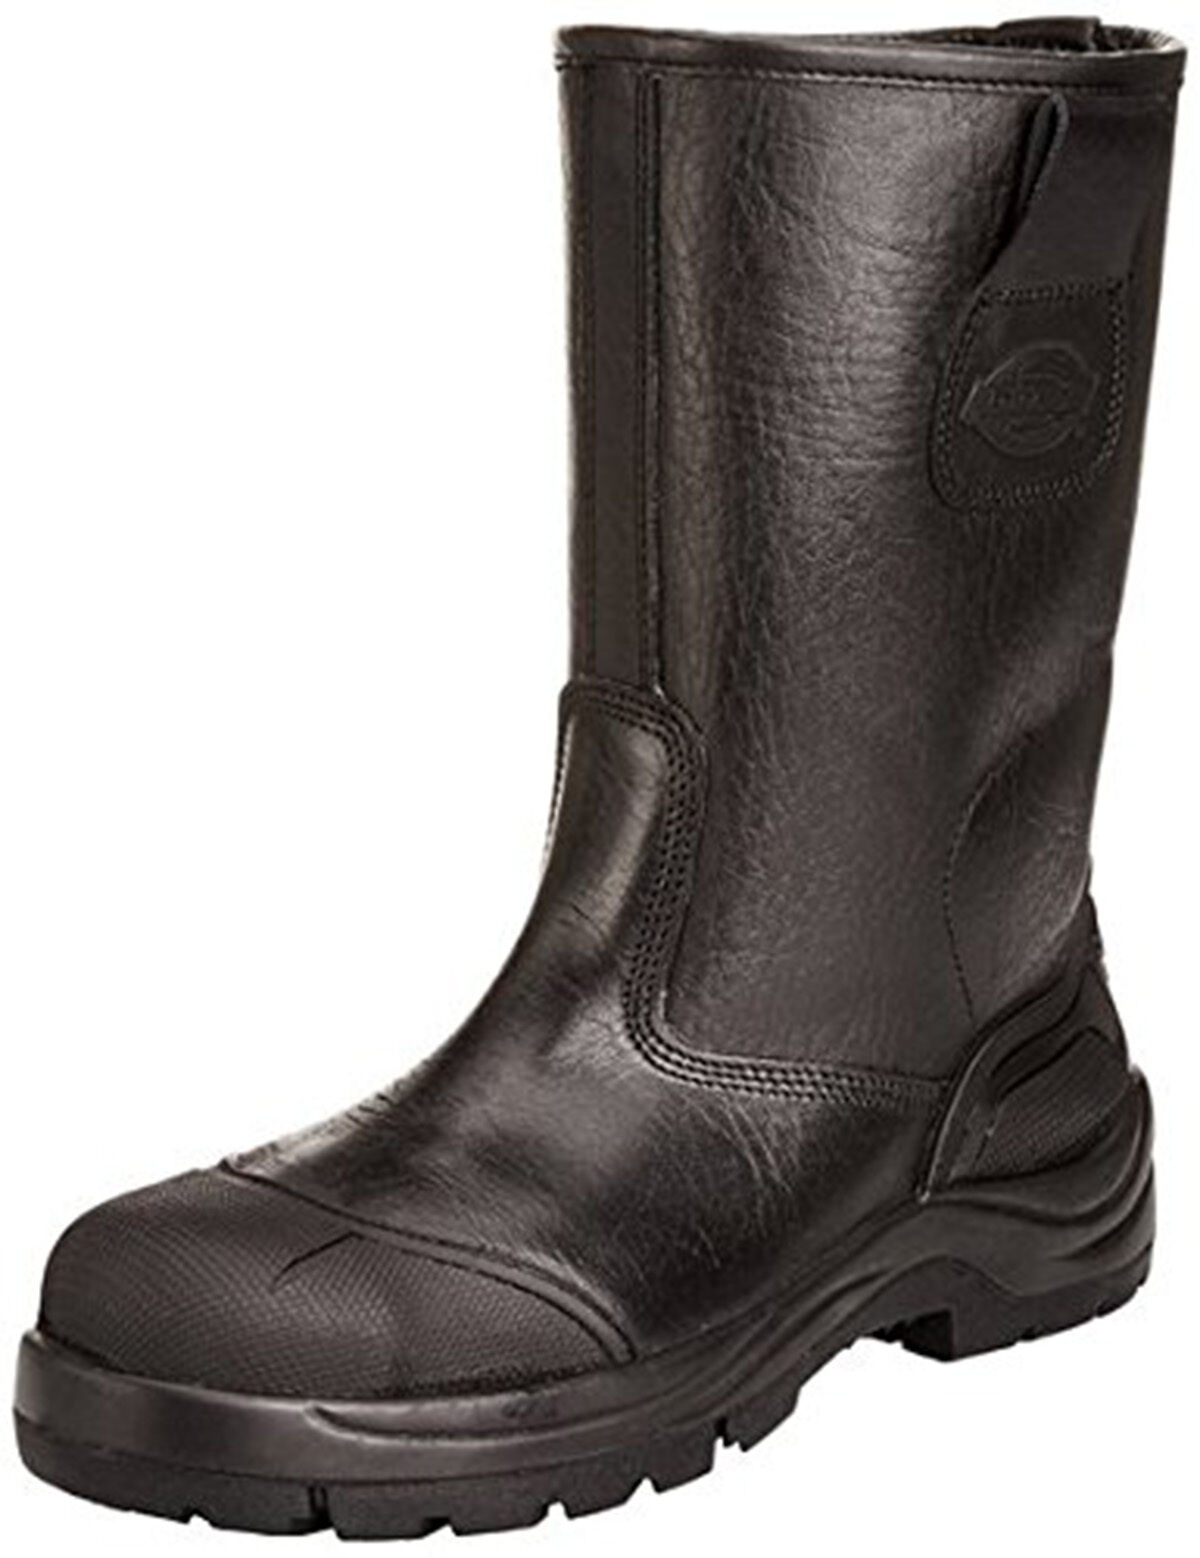 DICKIES SAFETY RIGGER COWETA BOOTS STEEL TOE BLACK COWETA RIGGER MENS FD9211 SIZE UK 6 - 12 a93944